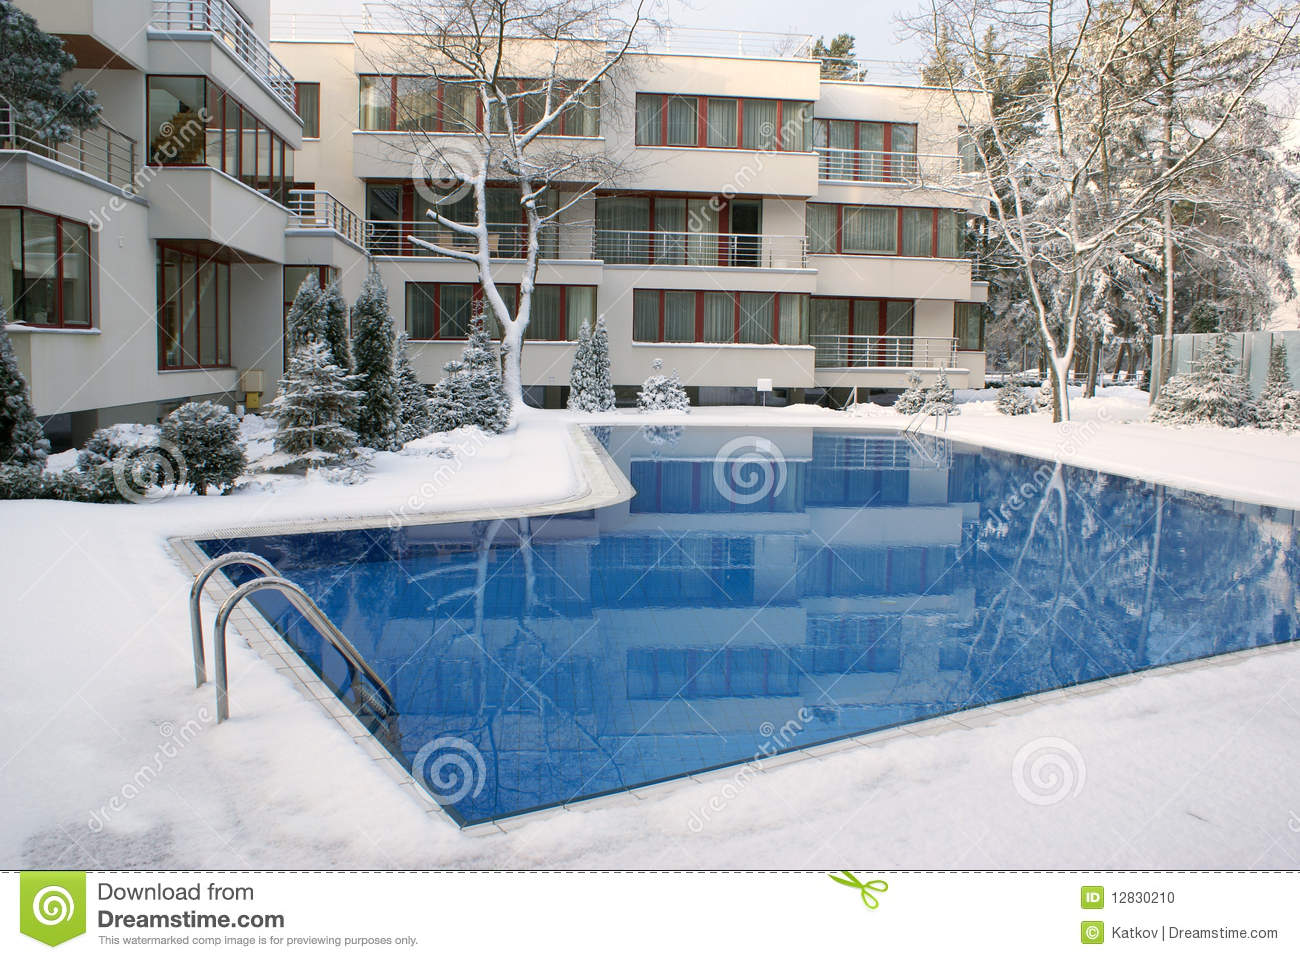 Open air swimming pool in winter stock photo image 12830210 - Opening a swimming pool after winter ...